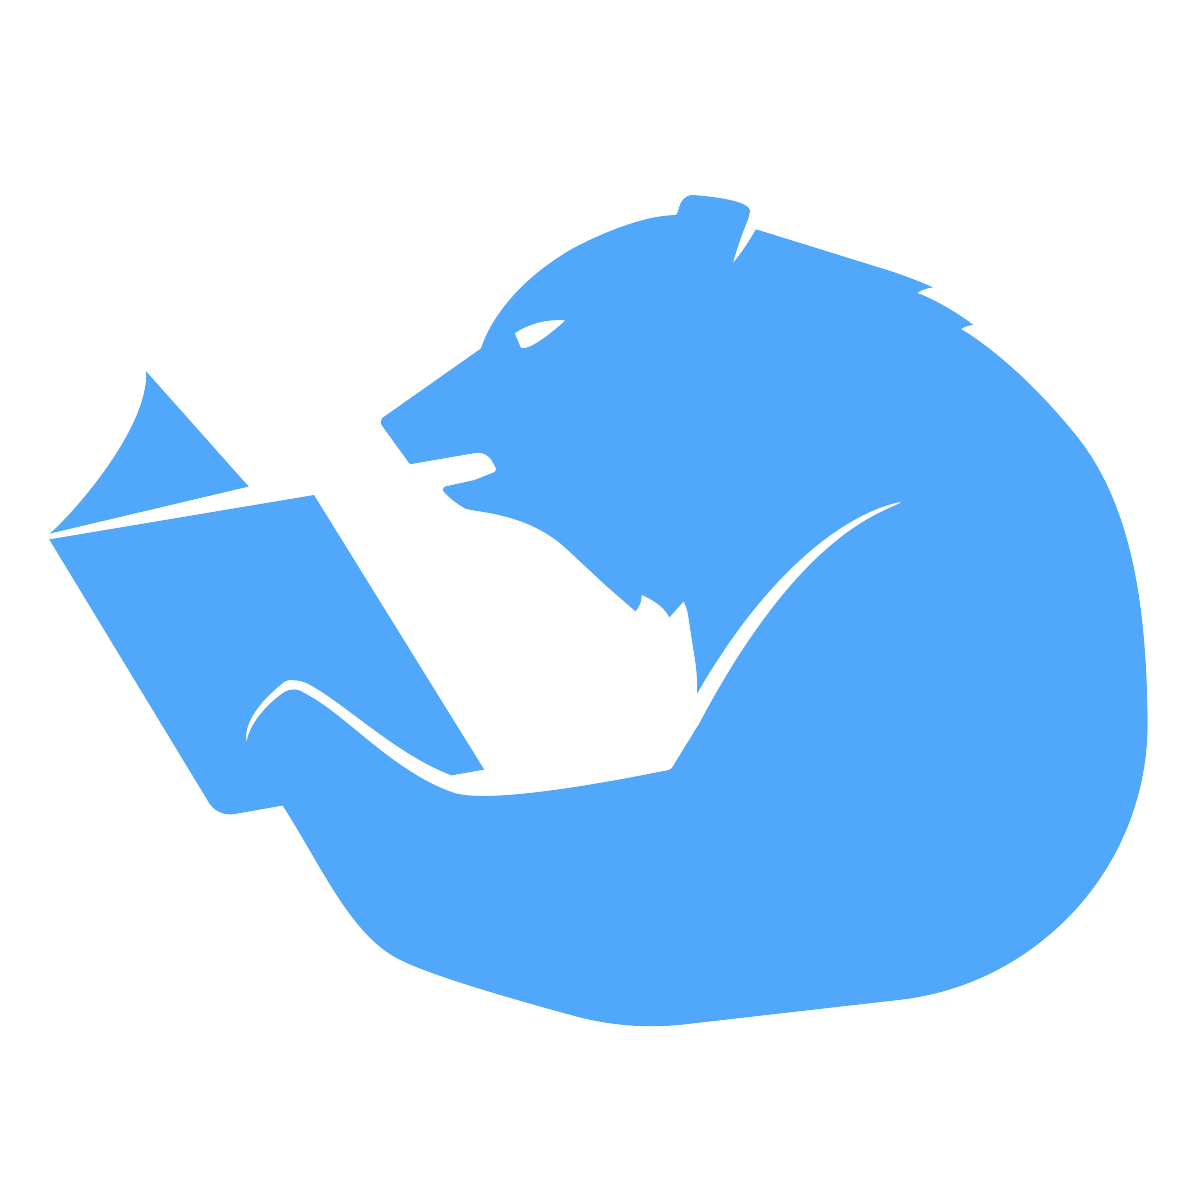 Silhouette of a bear reading